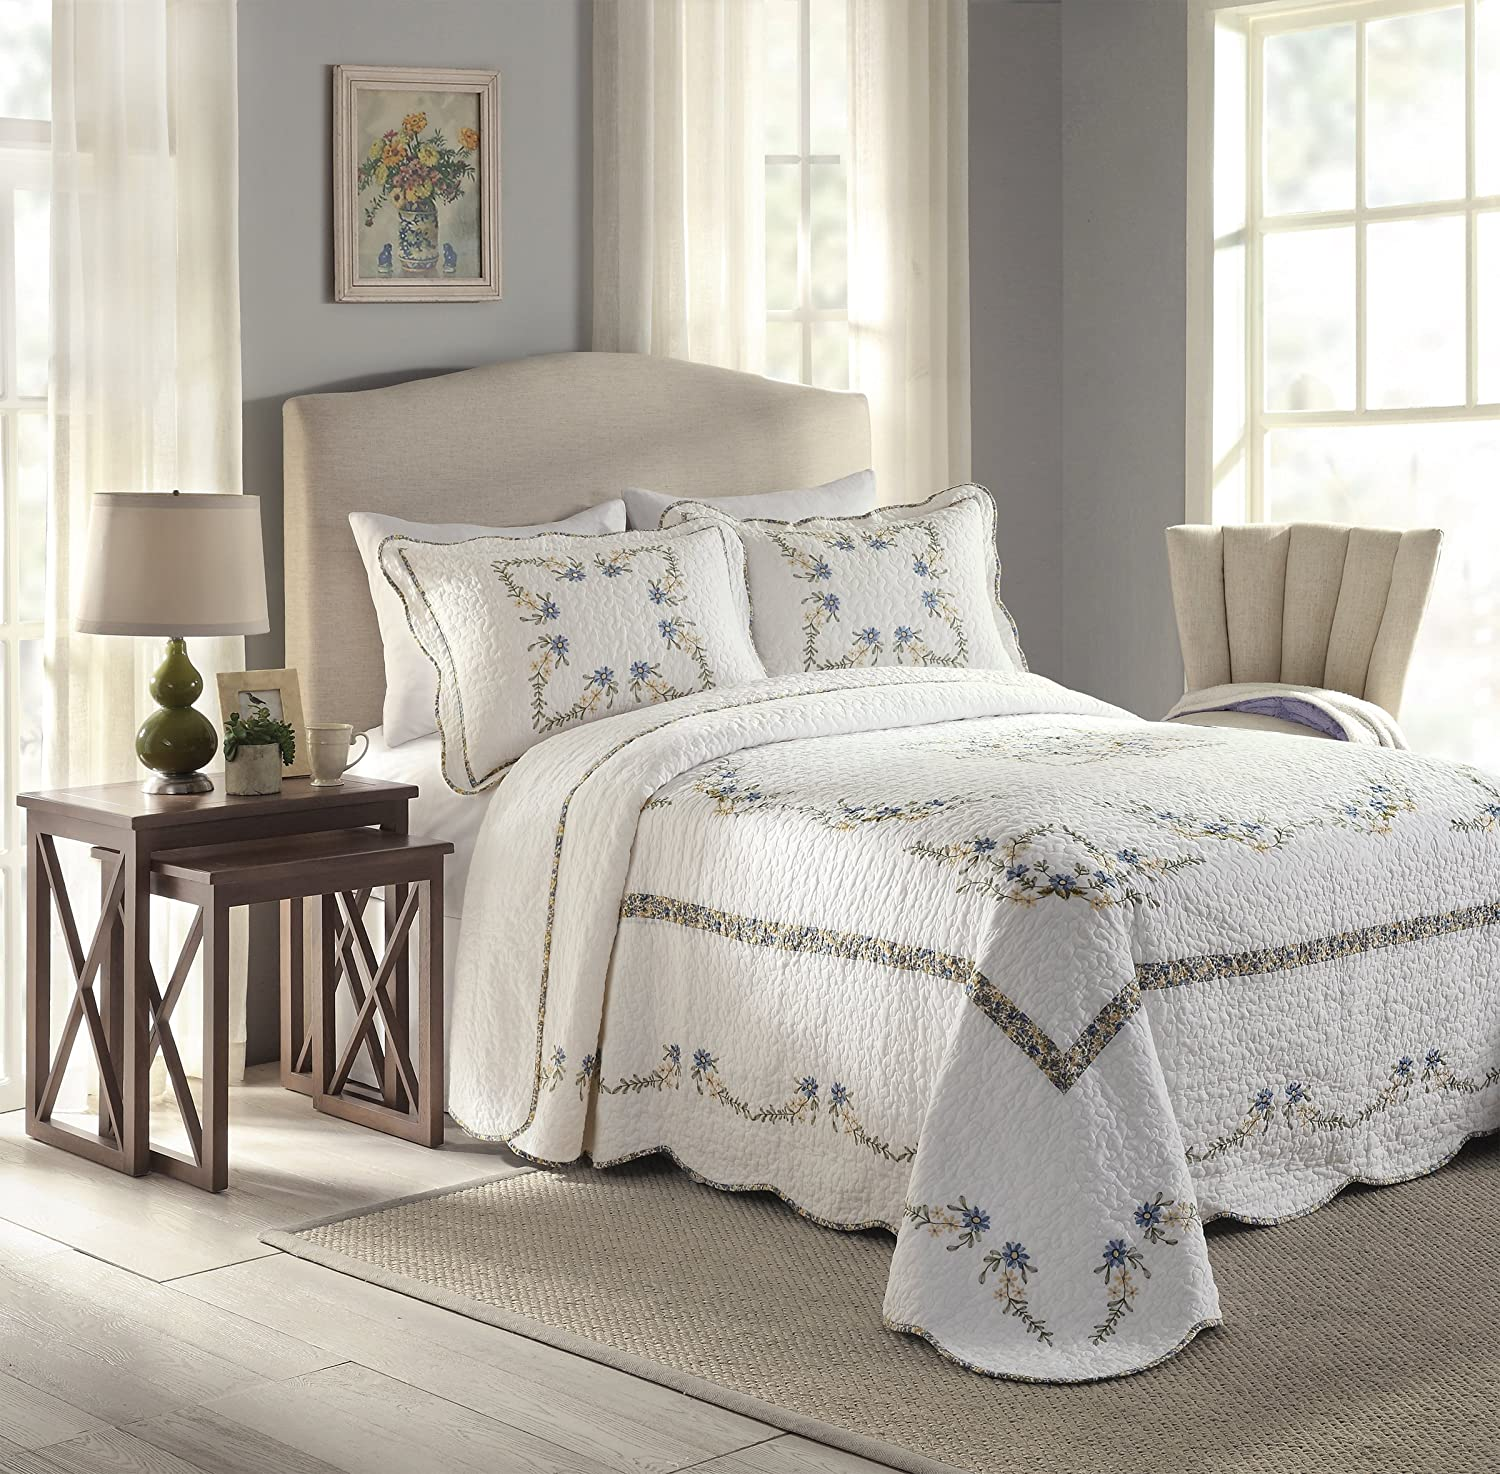 Heather Cotton Filled Bedspread, Queen